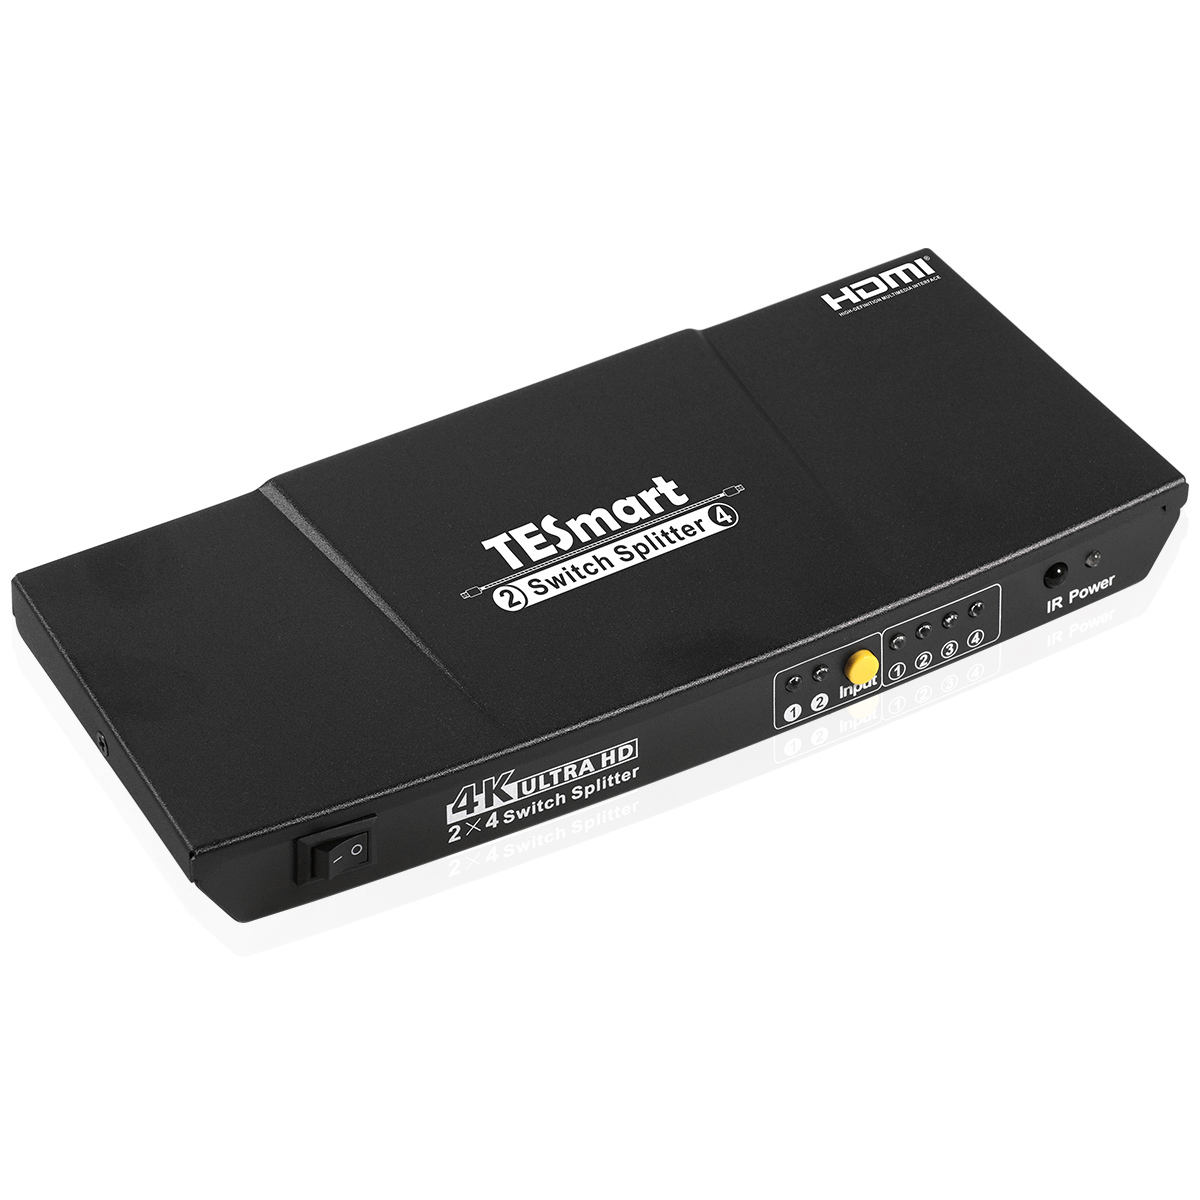 Factory directly HDMI Spliter 2x4 HDMI Support proffered audio settingSplitter 2 In 4 Out 4K 30HZ TESmart